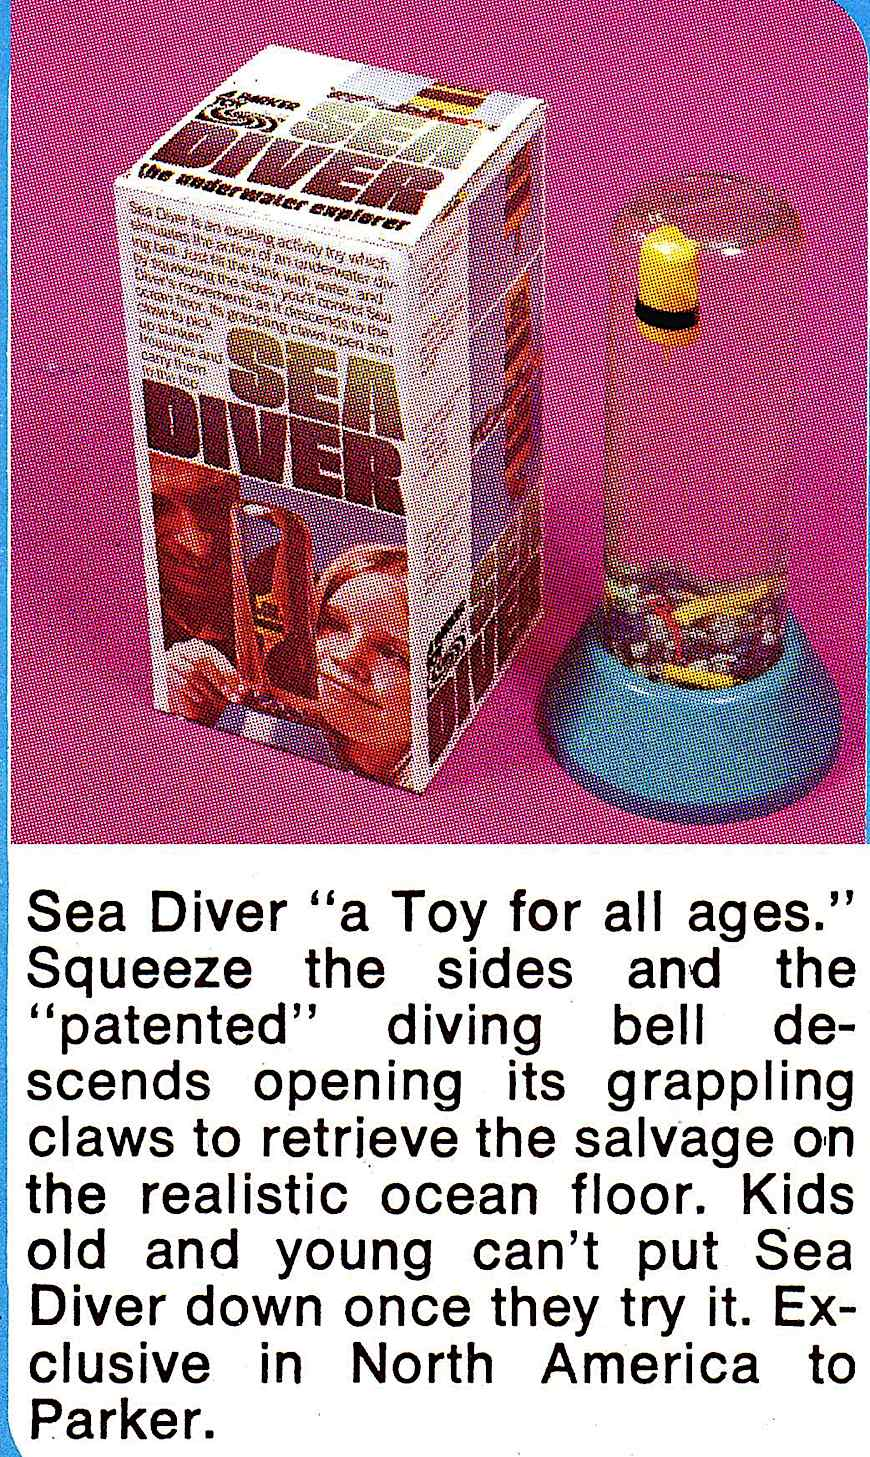 """Sea Diver""  diving bell with salvage grapple,  a 1975 toy by Parker, a color advertisement"